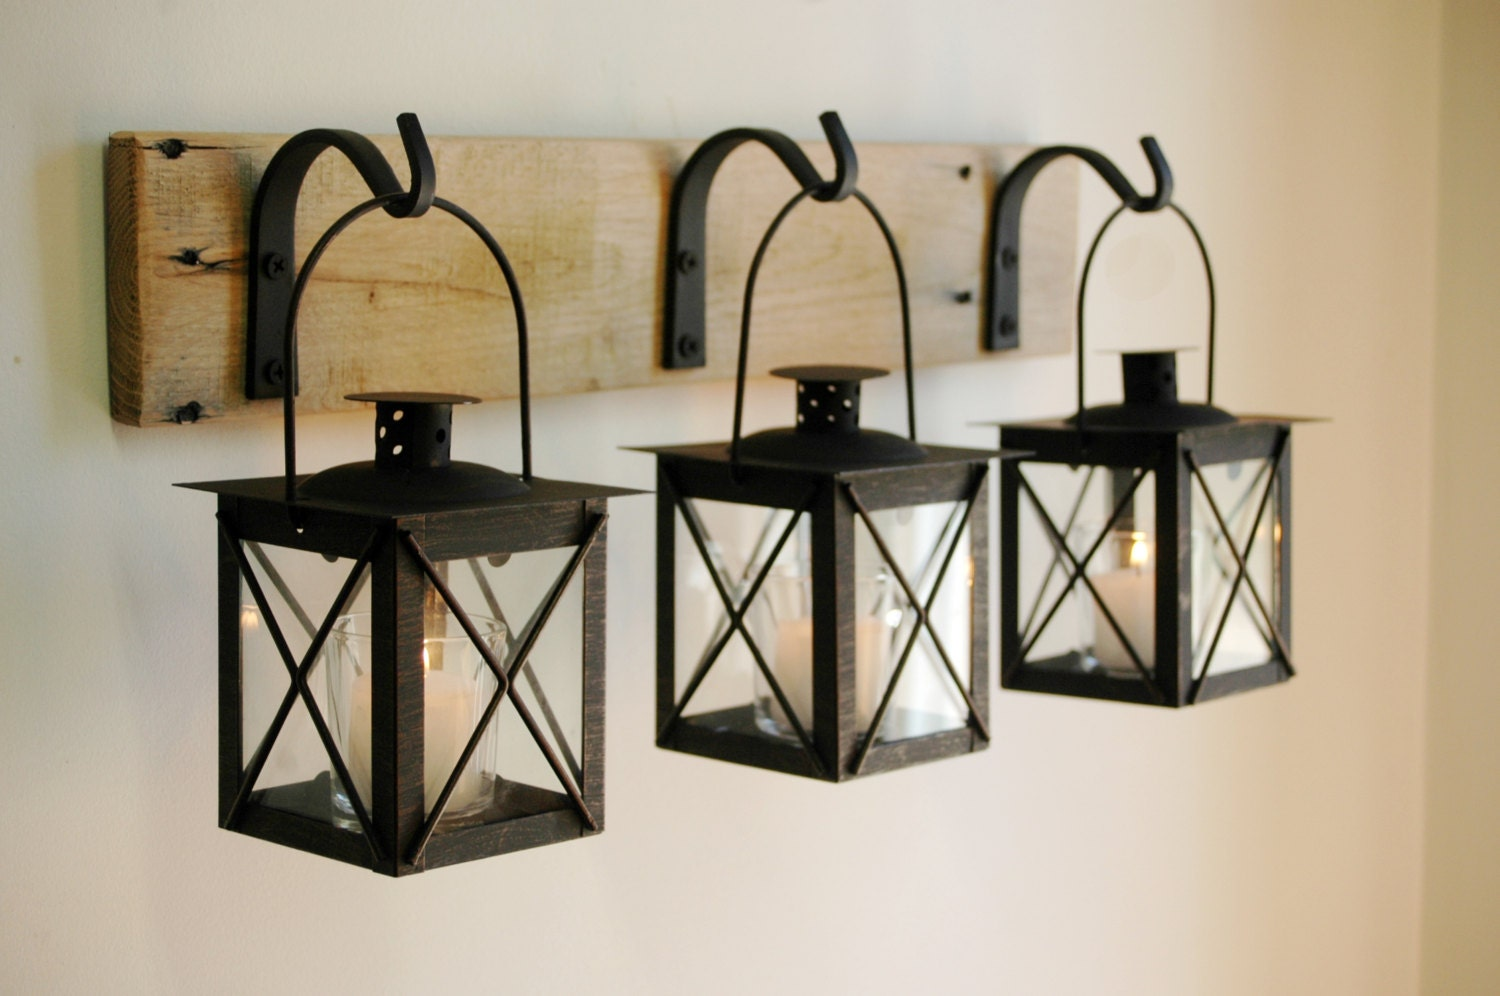 Home Decorative Item Black Lantern Trio Wall Decor Home Decor Rustic Decor